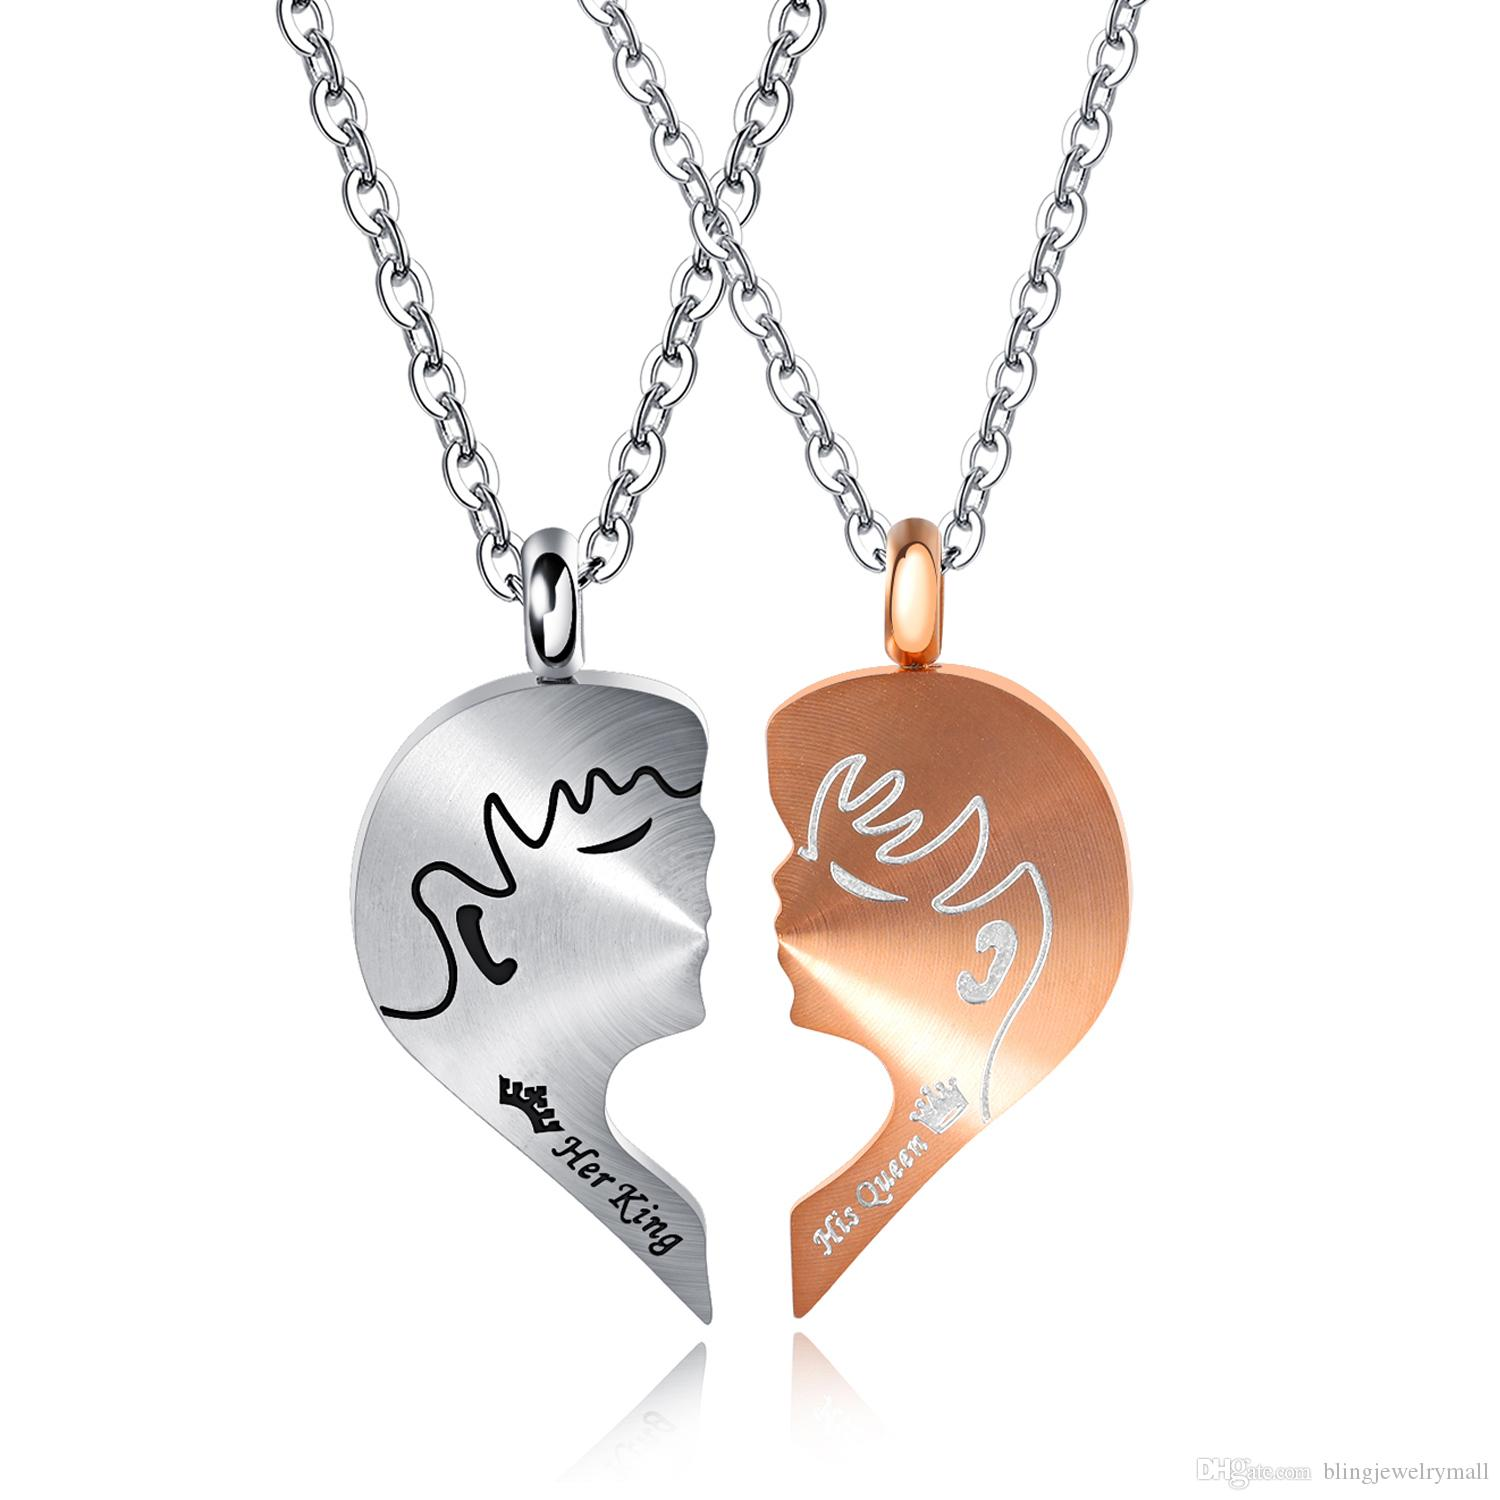 f672e8f920 Wholesale Her King His Queen Love Necklaces For Couples Titanium Steel  Necklace & Pendants Link Chain Trendy Pendant Necklaces 1378 Heart  Necklaces Gold ...